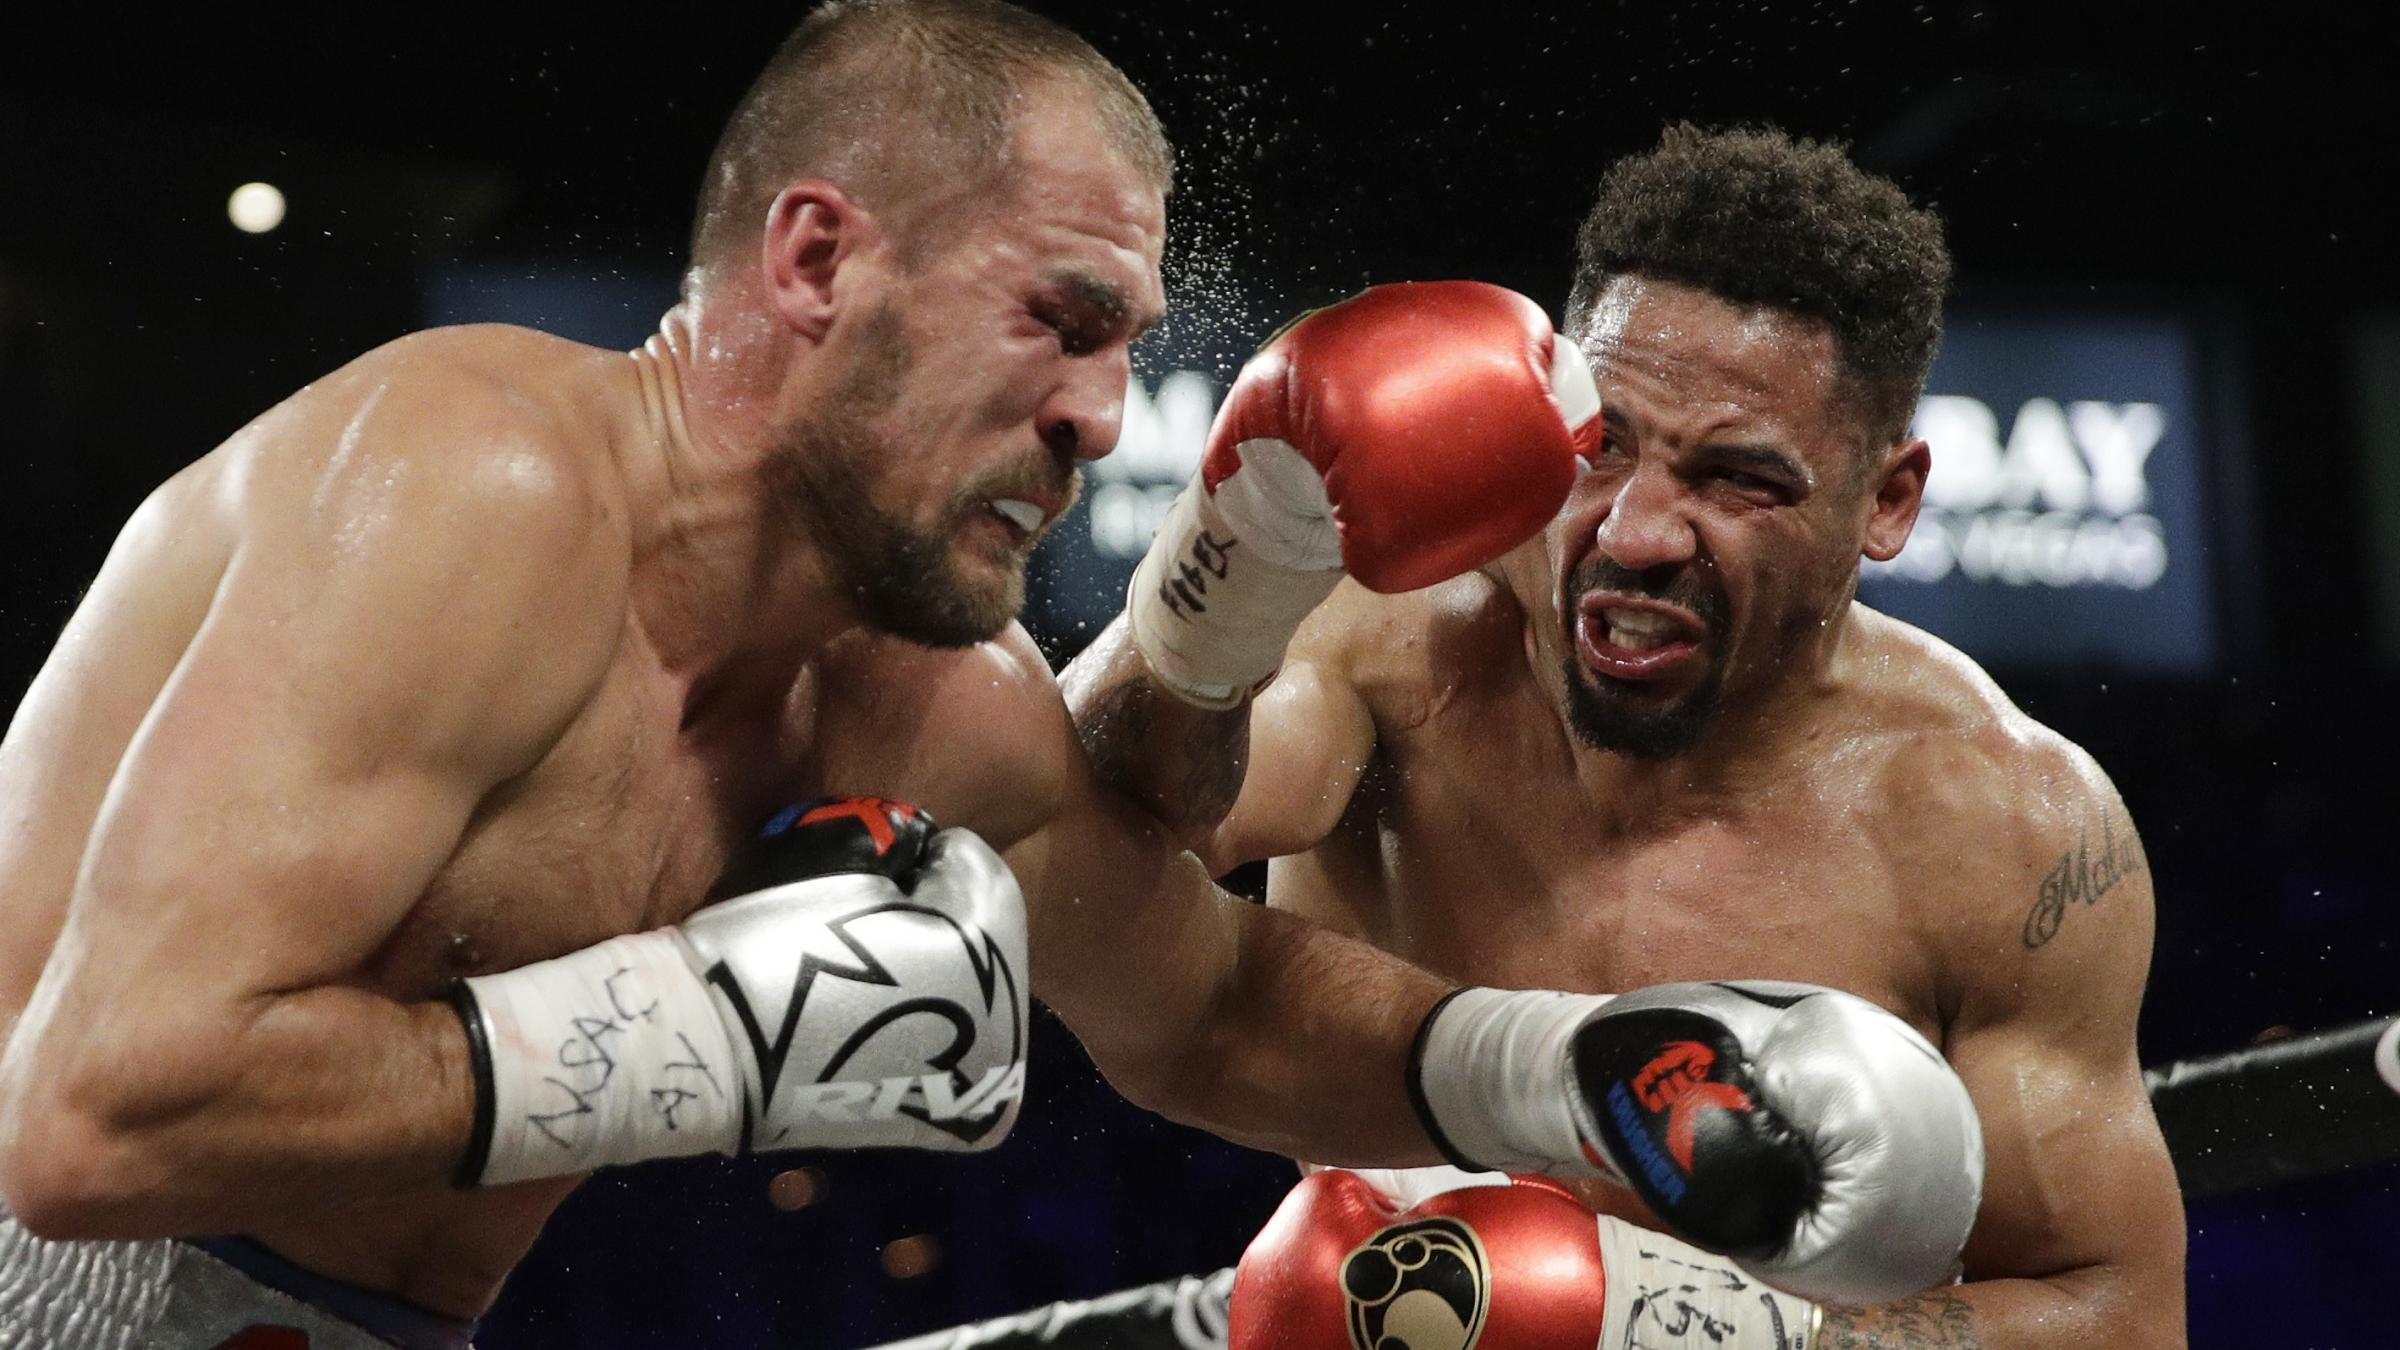 Ward vs Kovalev II: Round by round analysis